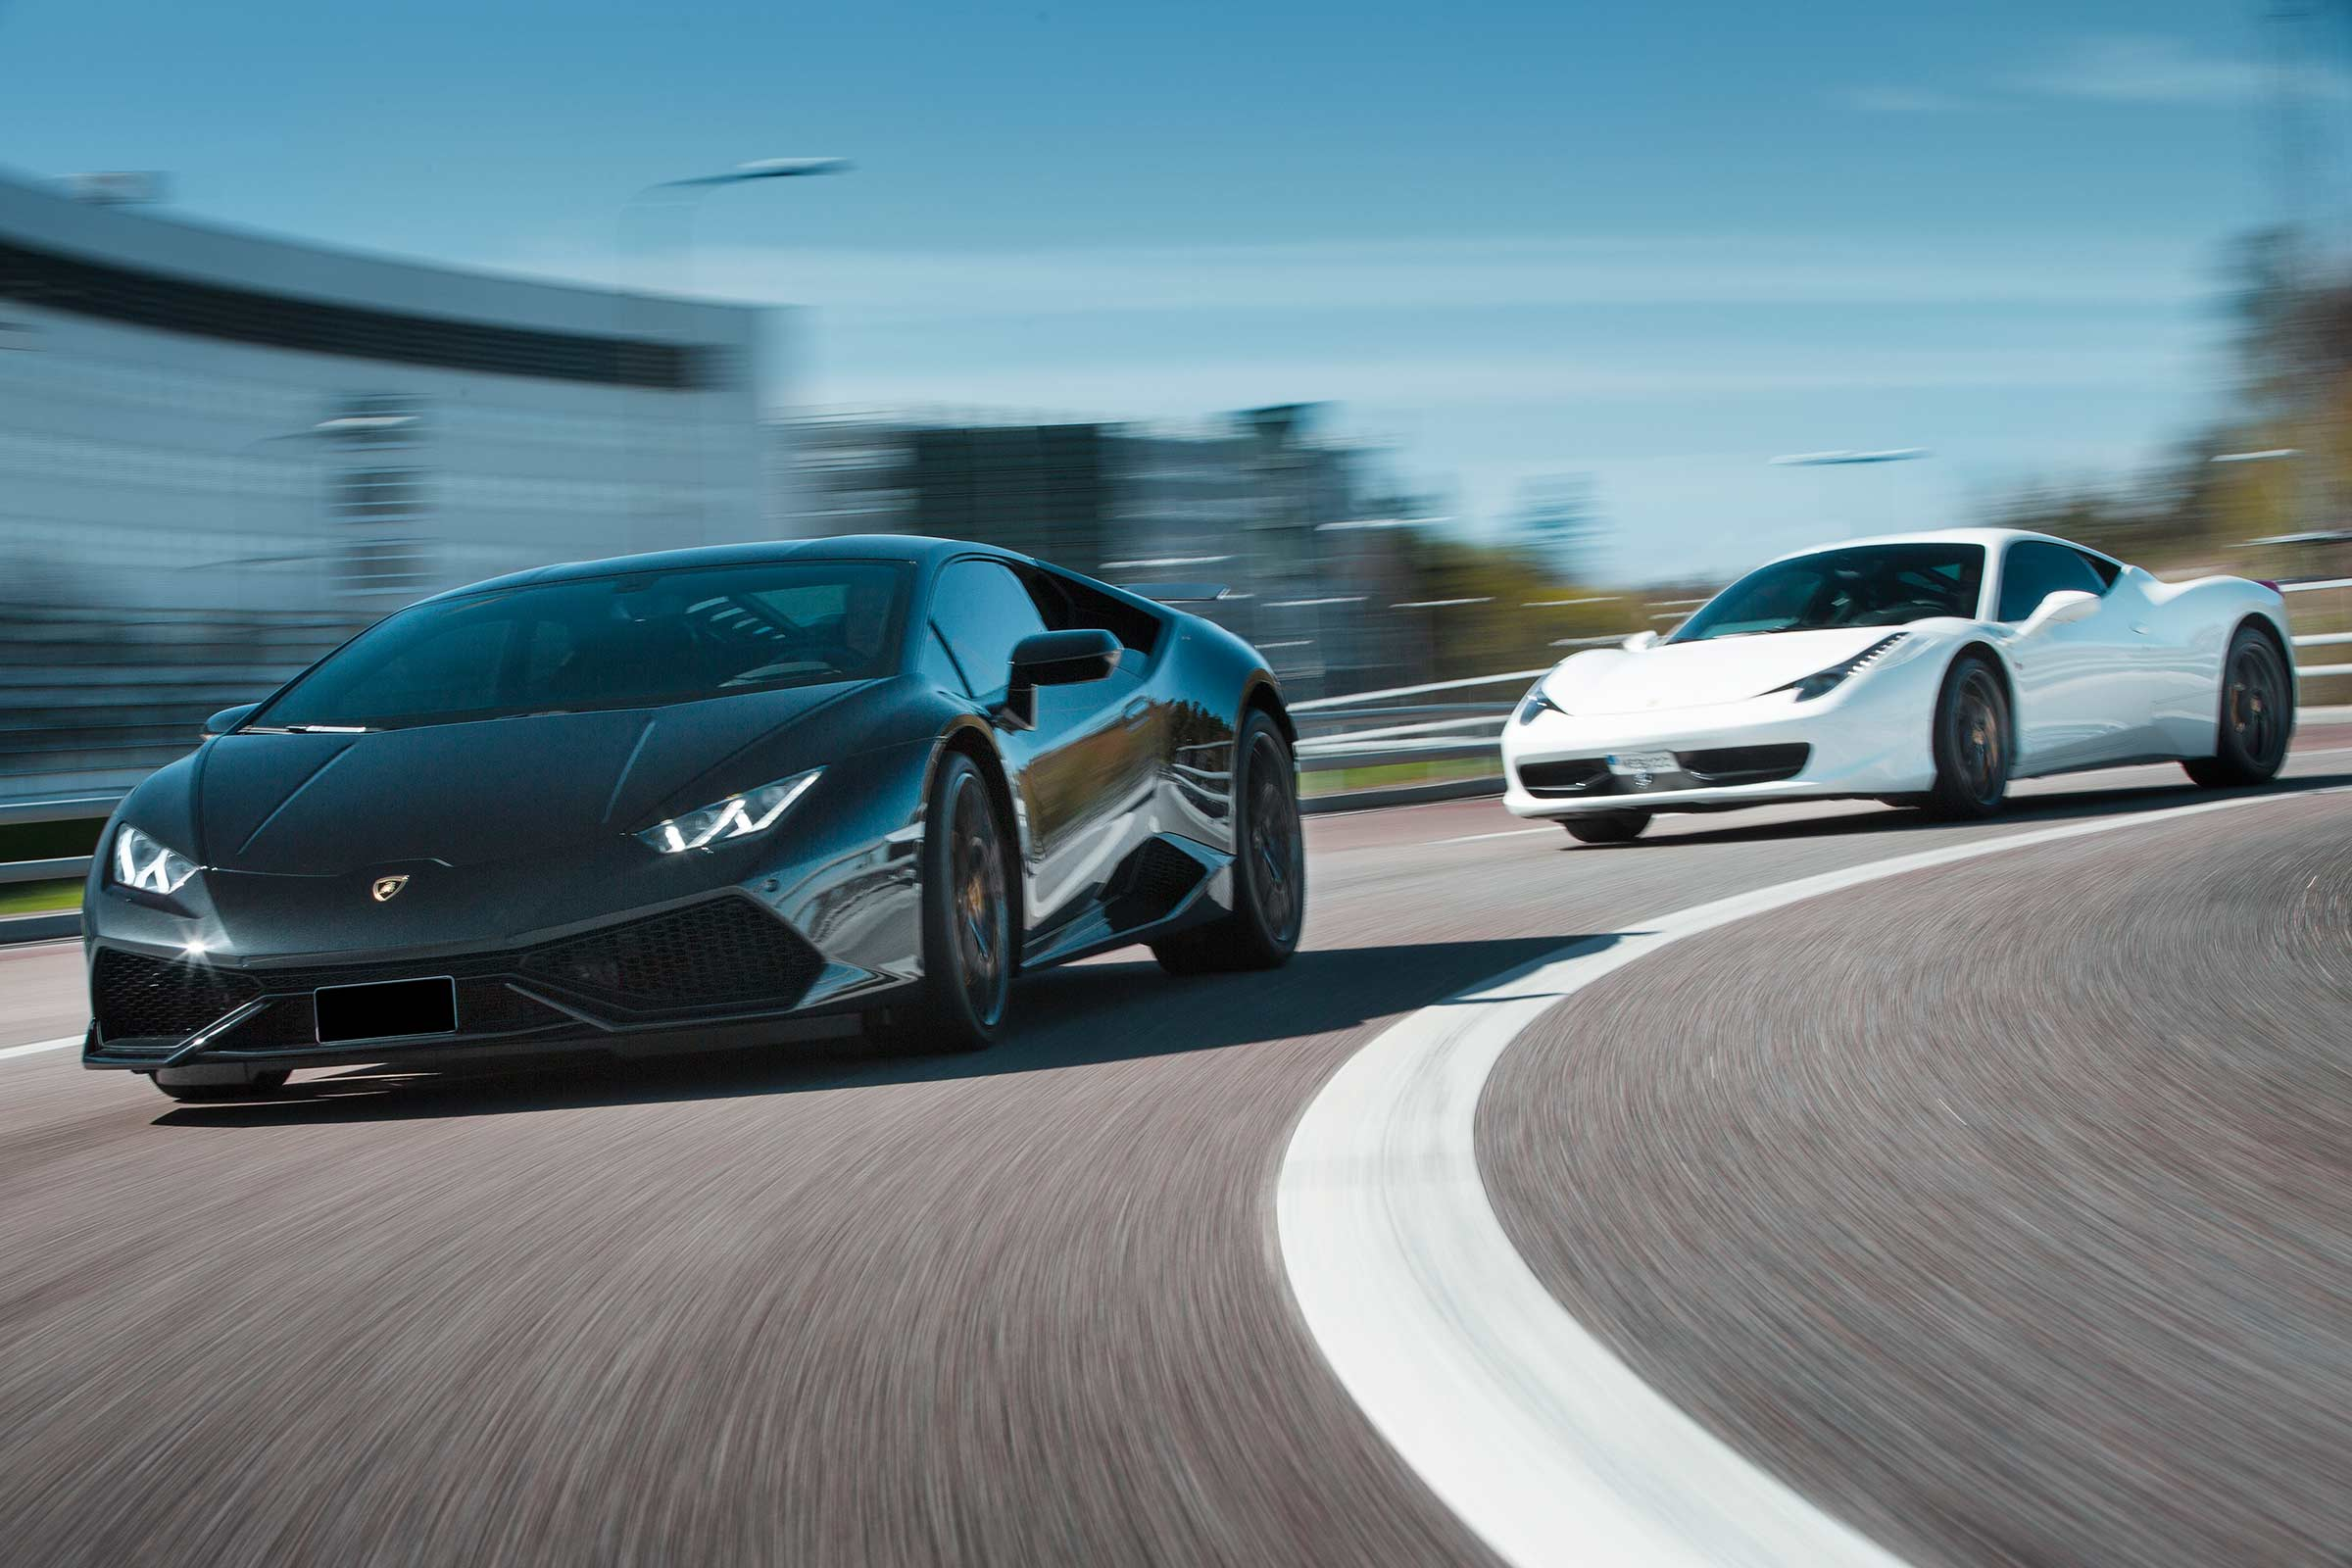 Ferrari vs Lamborghini (Speedtest)